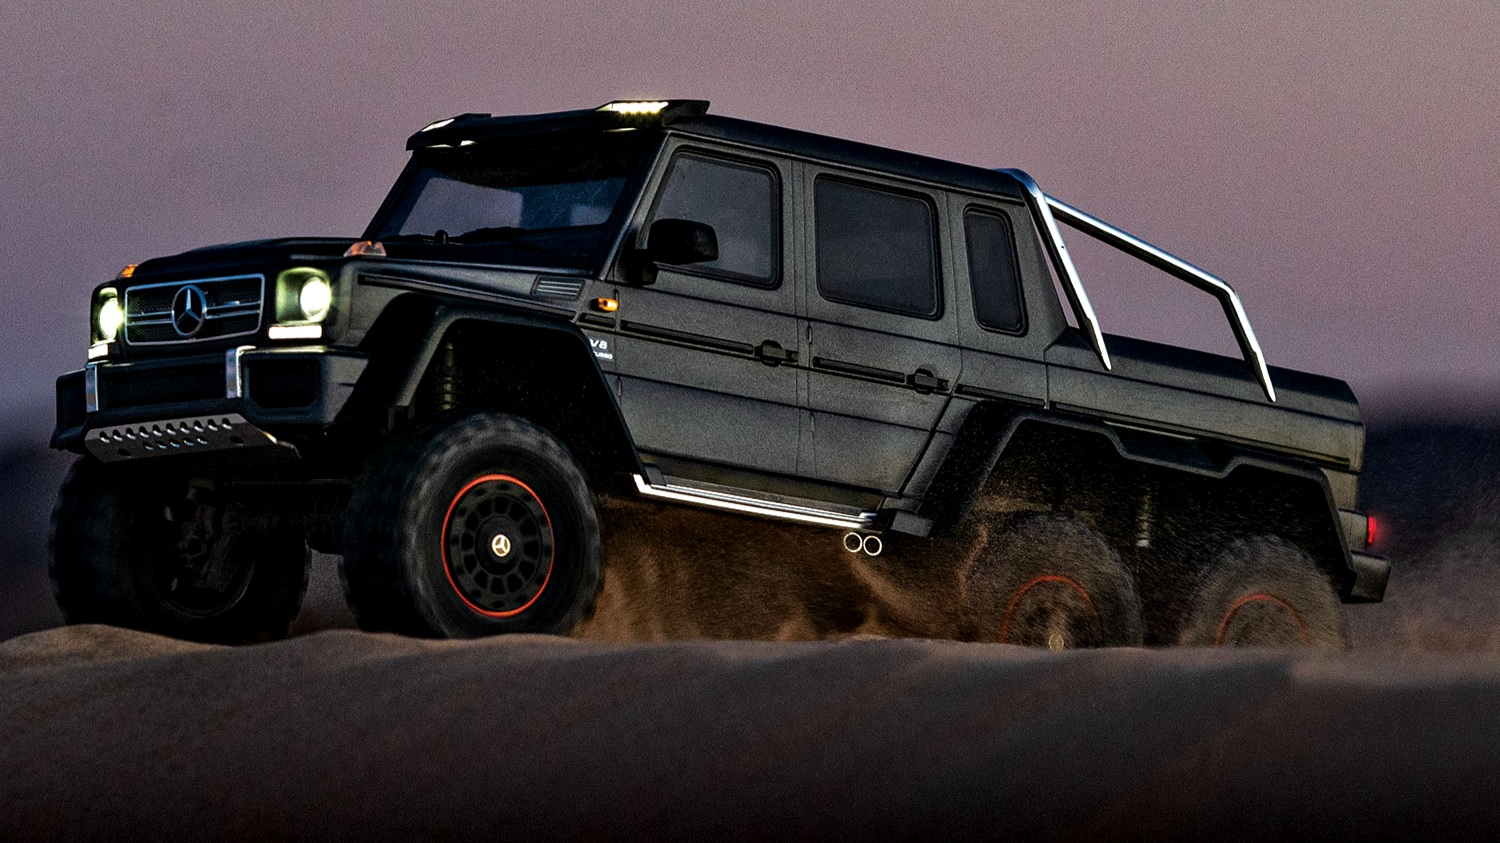 88096-4-TRX4-MB-6x6-Black-dune-left-night-DX1I7929.jpg